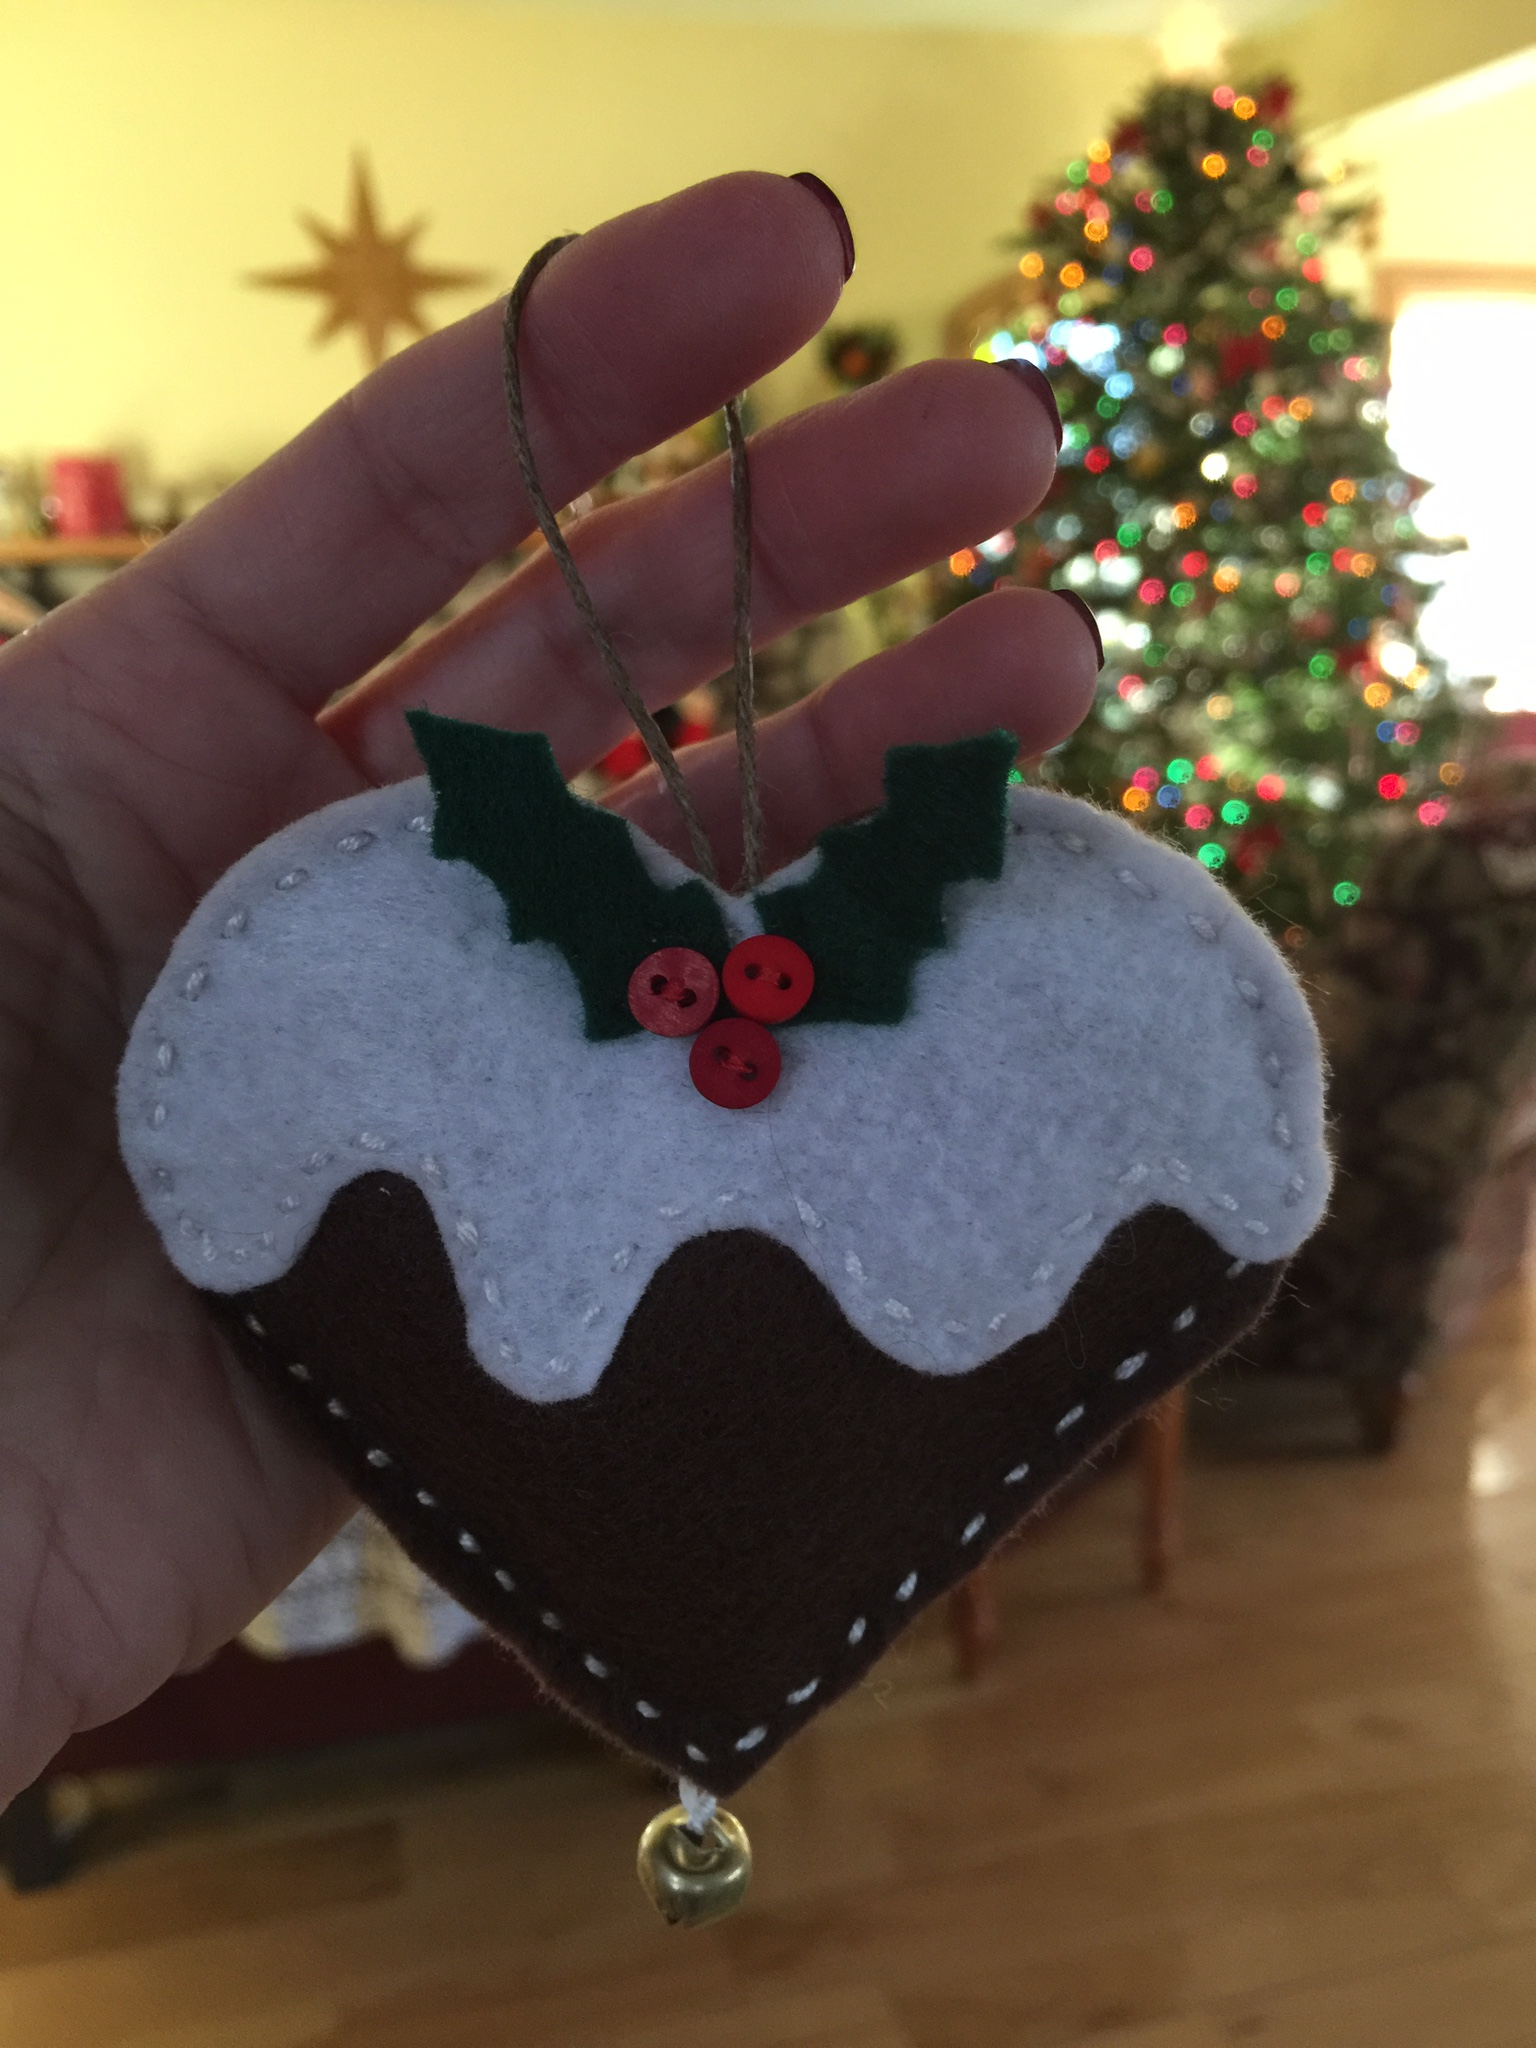 Gingerbread Holly Heart Ornament I made.